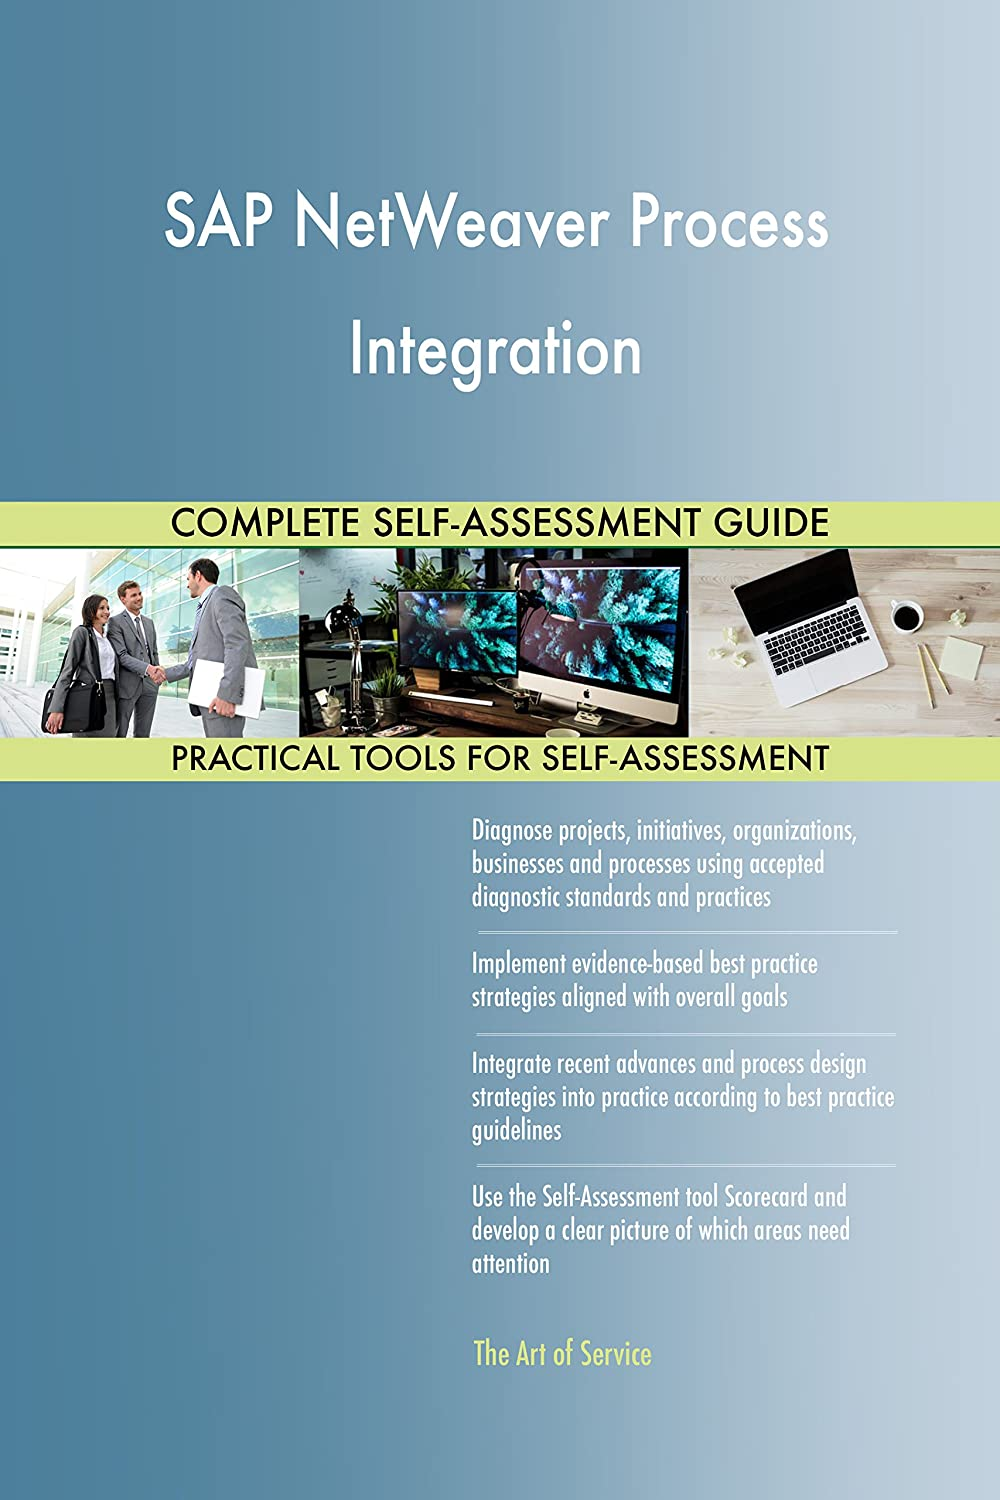 Amazon.com: SAP NetWeaver Process Integration All-Inclusive Self-Assessment  - More than 660 Success Criteria, Instant Visual Insights, ...